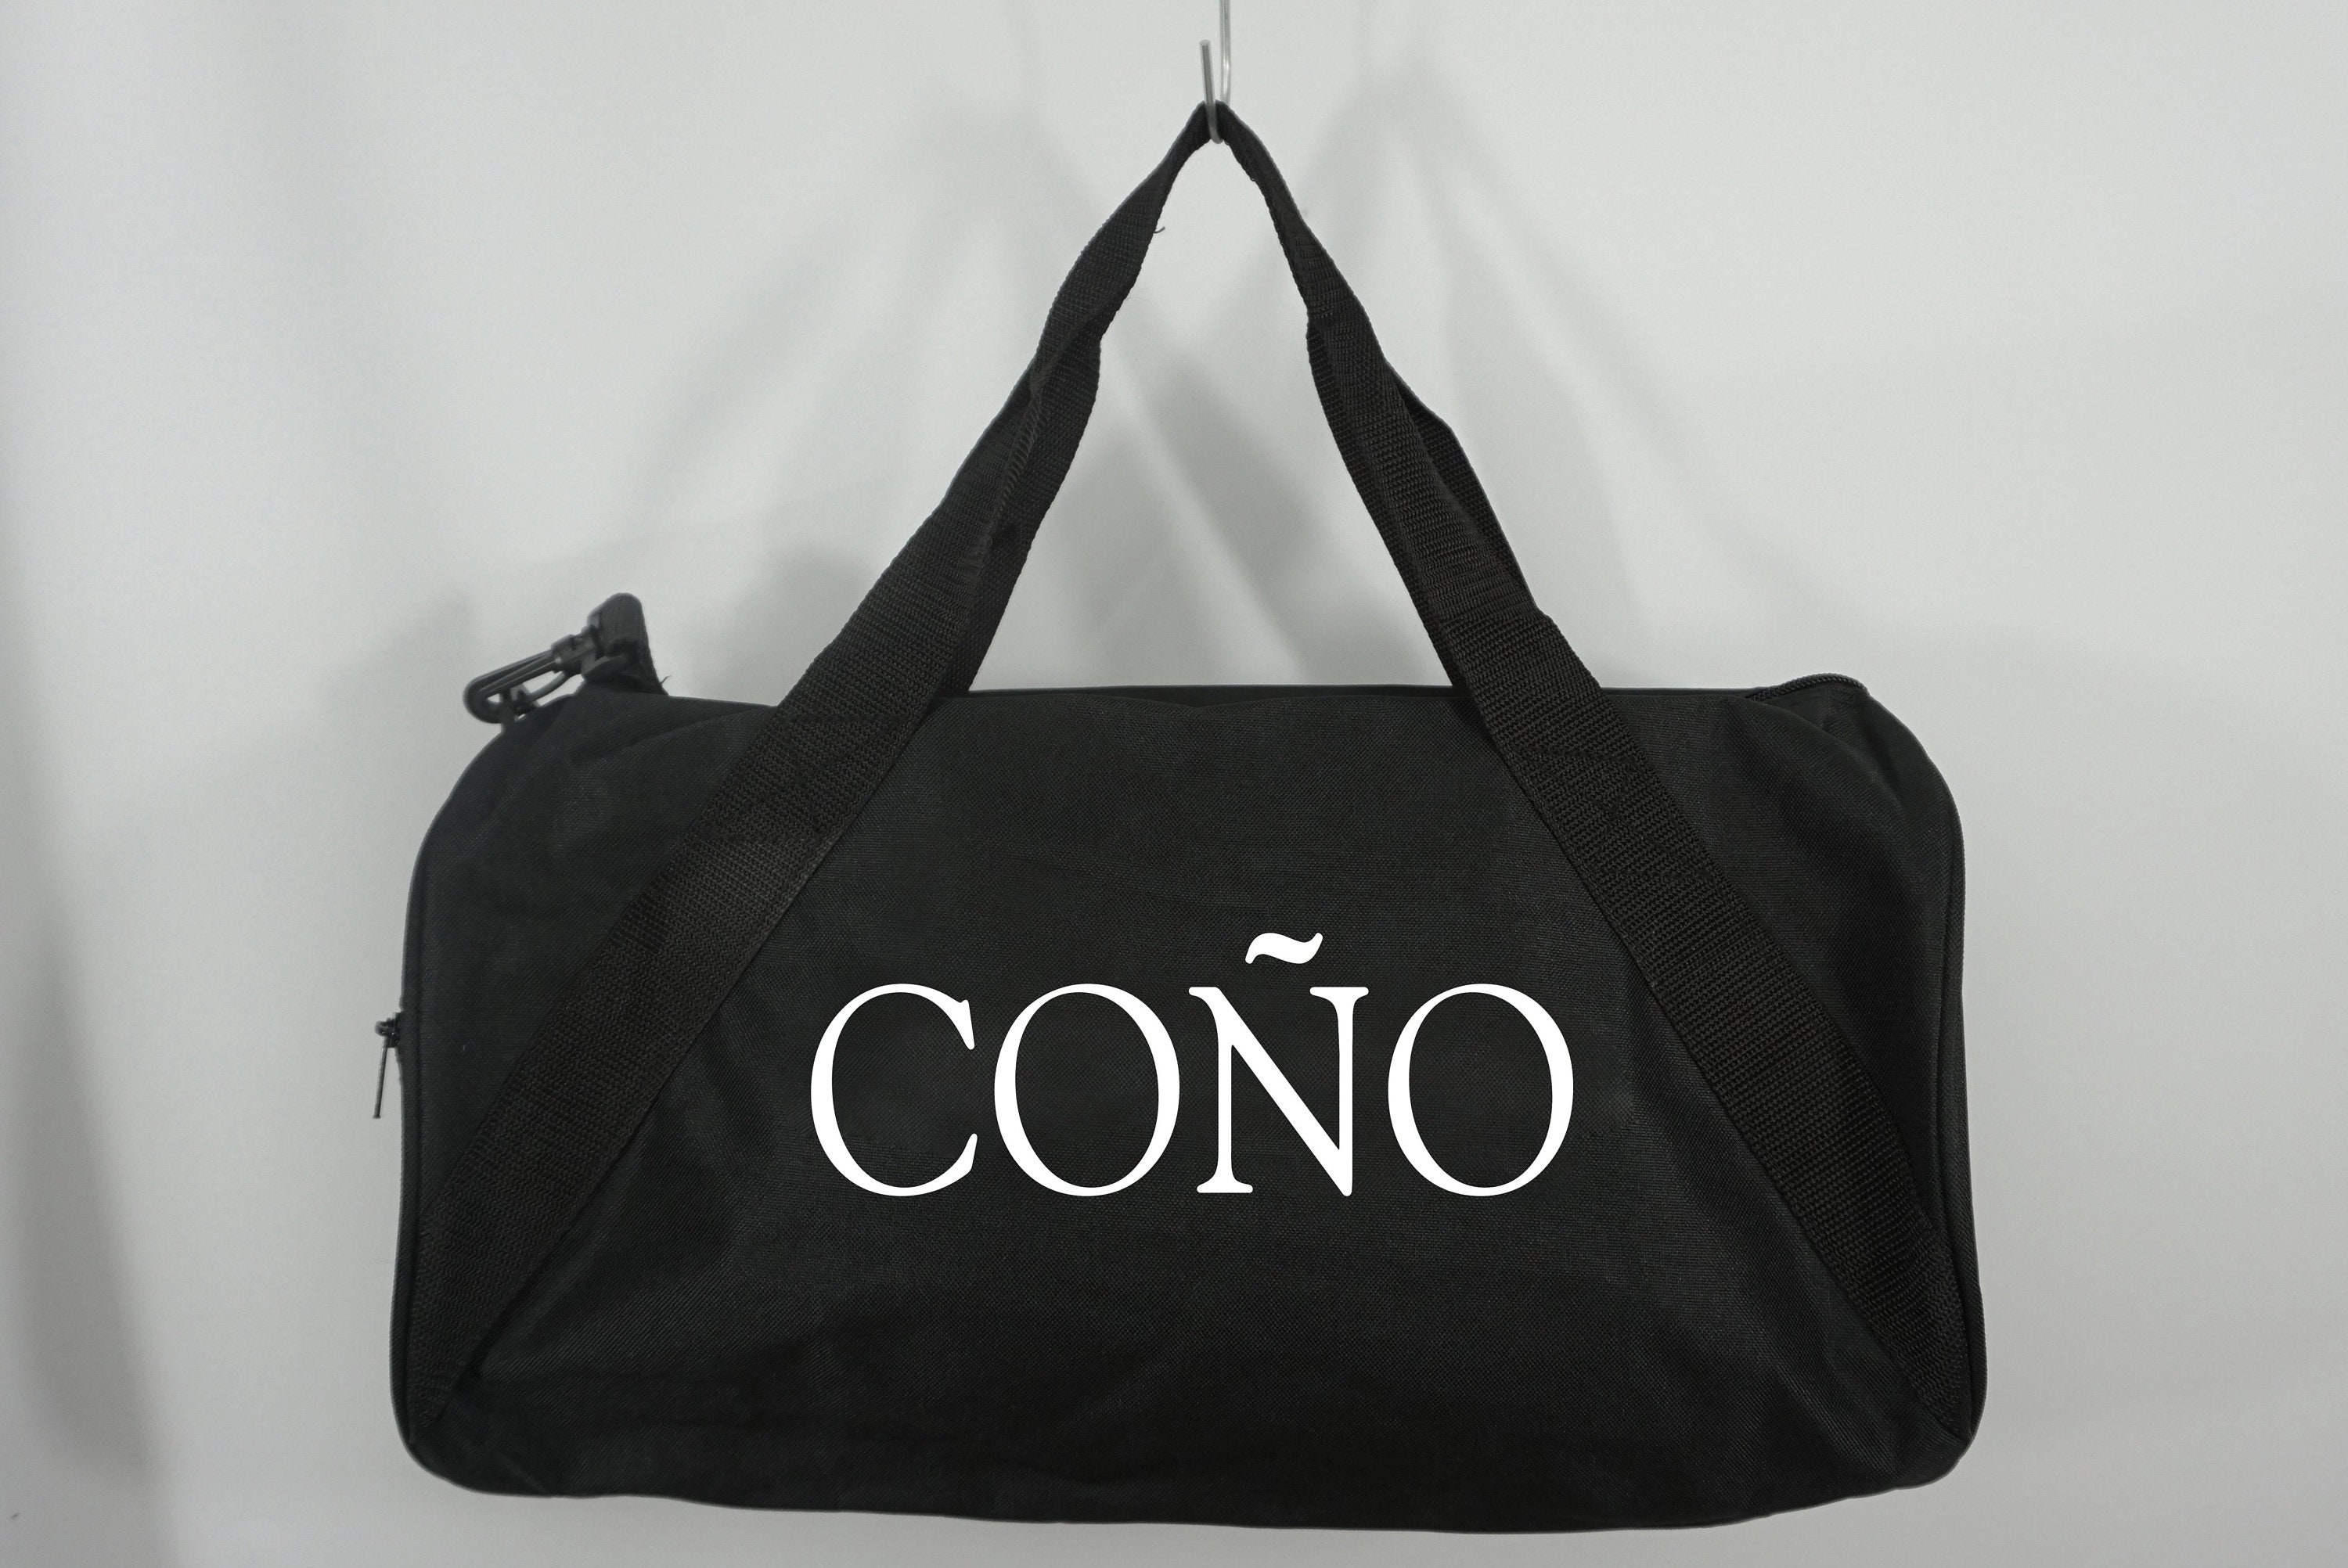 COÑO Duffle Bag Black Duffel Bag Weekend Travel Bag Custom   Etsy 497909ce4a